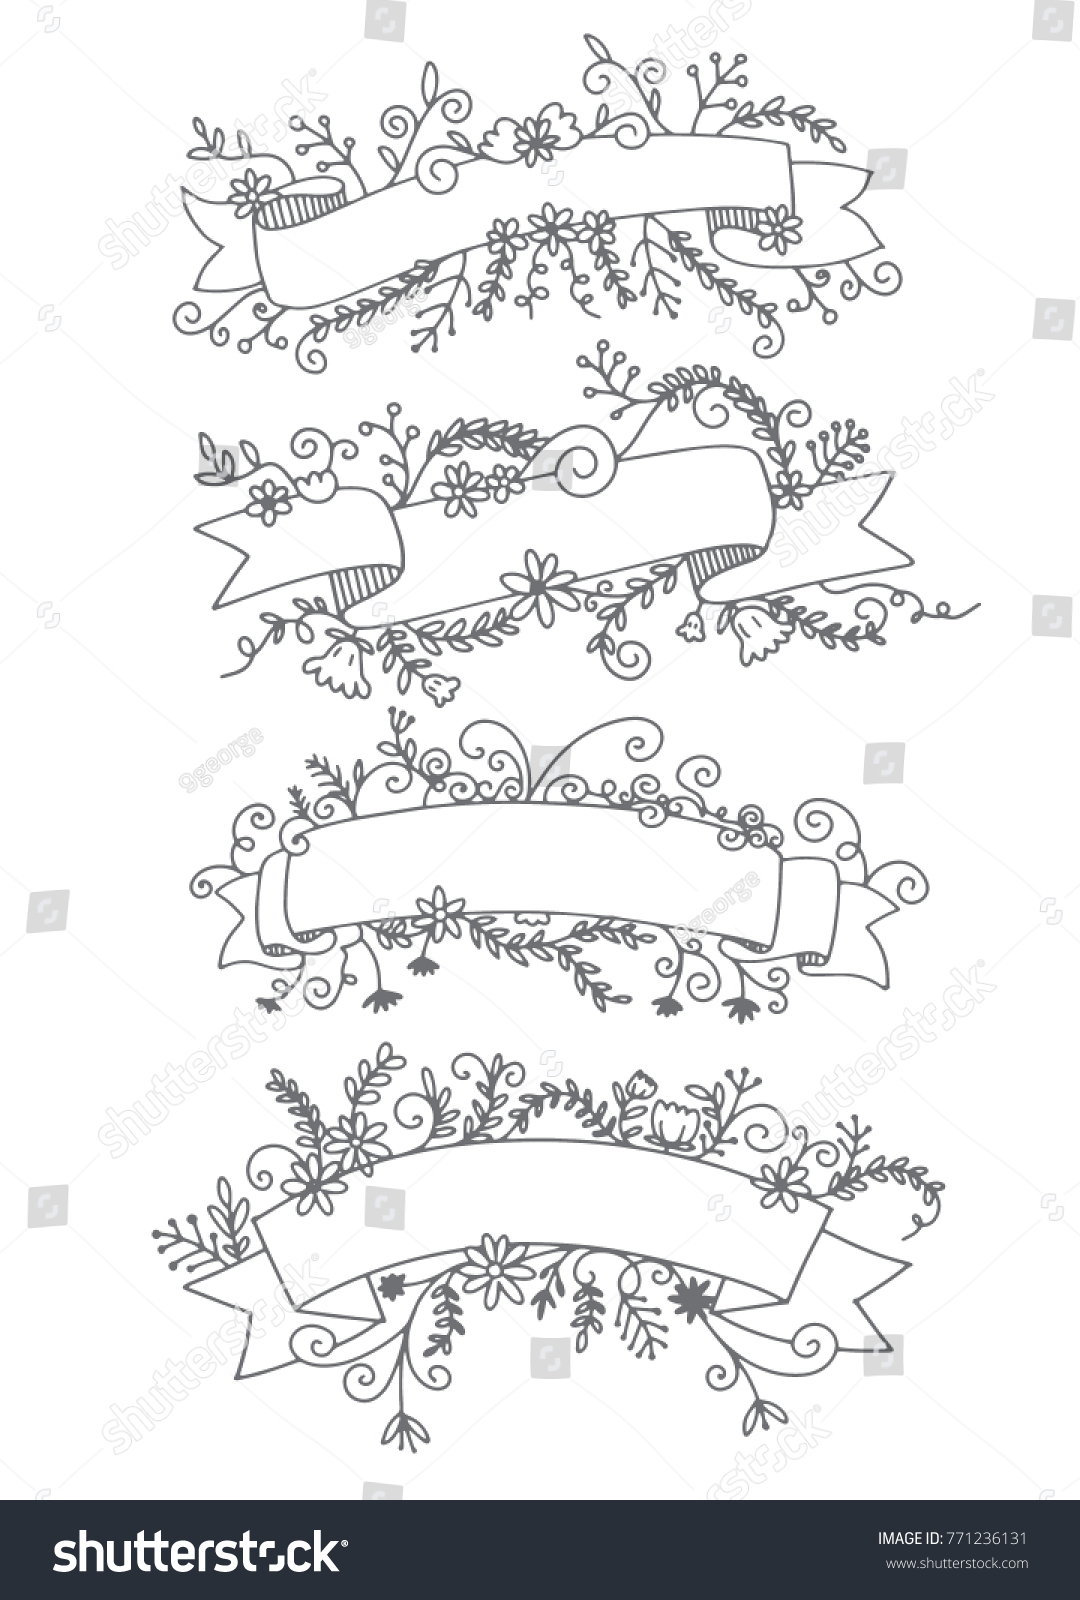 Collection Of Hand Drawn Doodle Design Elements Sketched Rustic Decorative Banners Dividers Ribbons